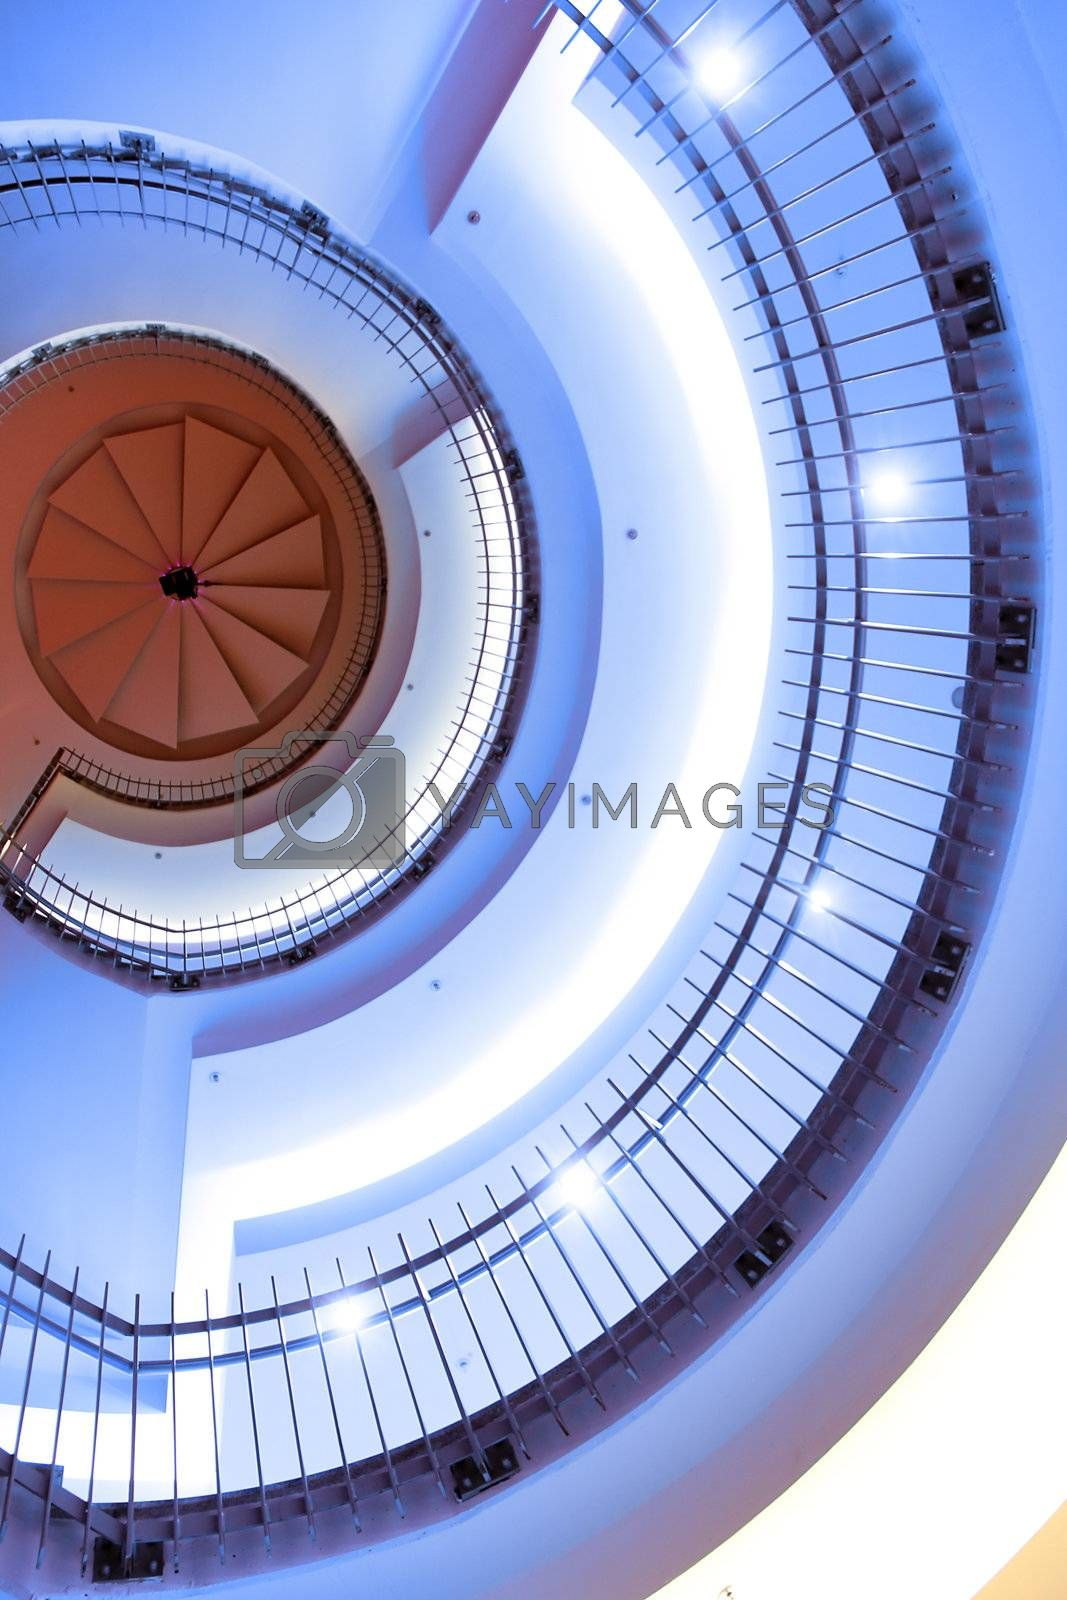 spiral stairs by Hasenonkel